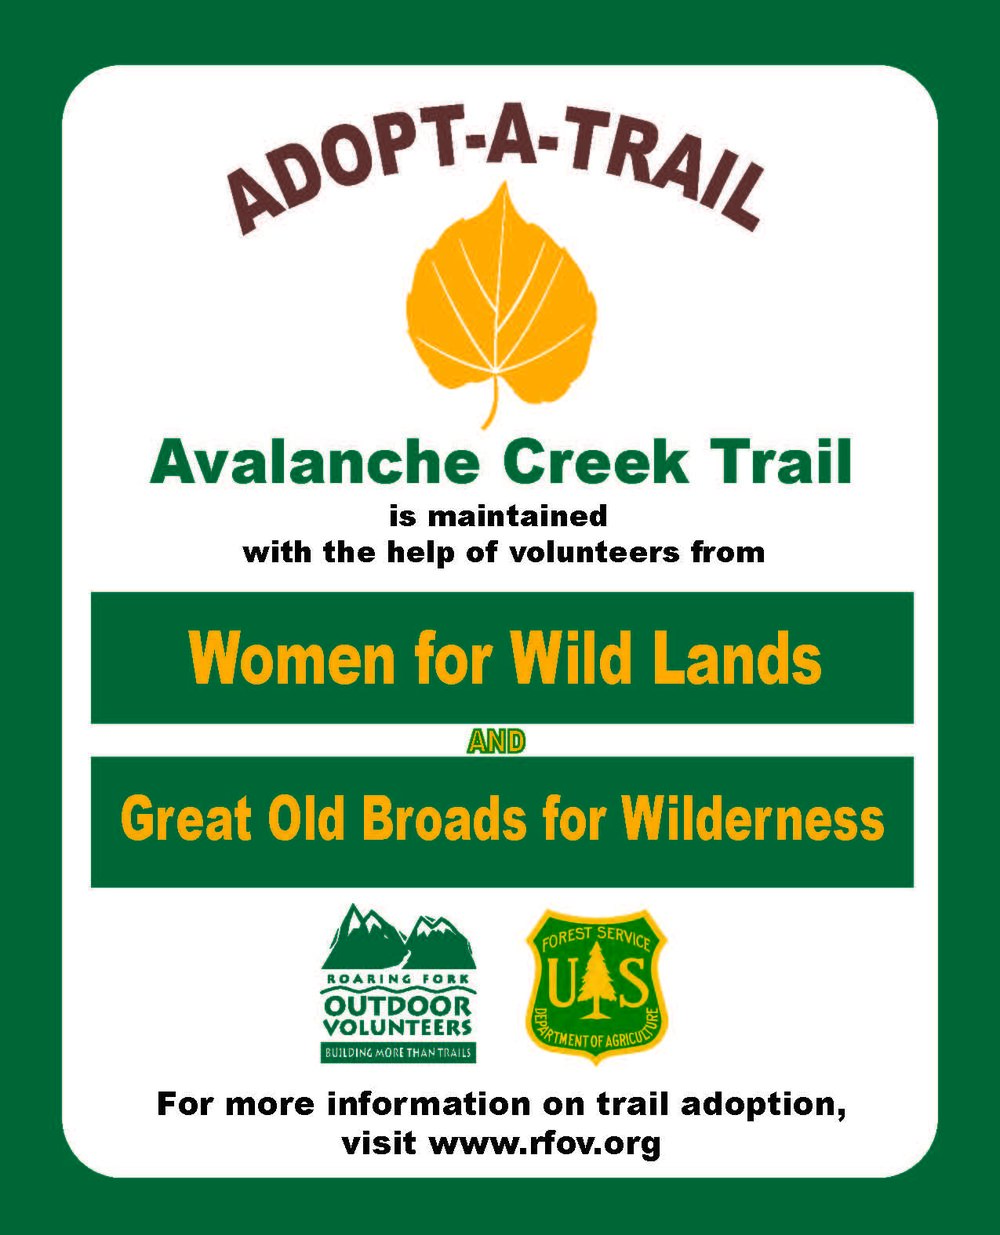 Volunteer groups, organizations, businesses, & individuals will be offered segments of the trail to adopt